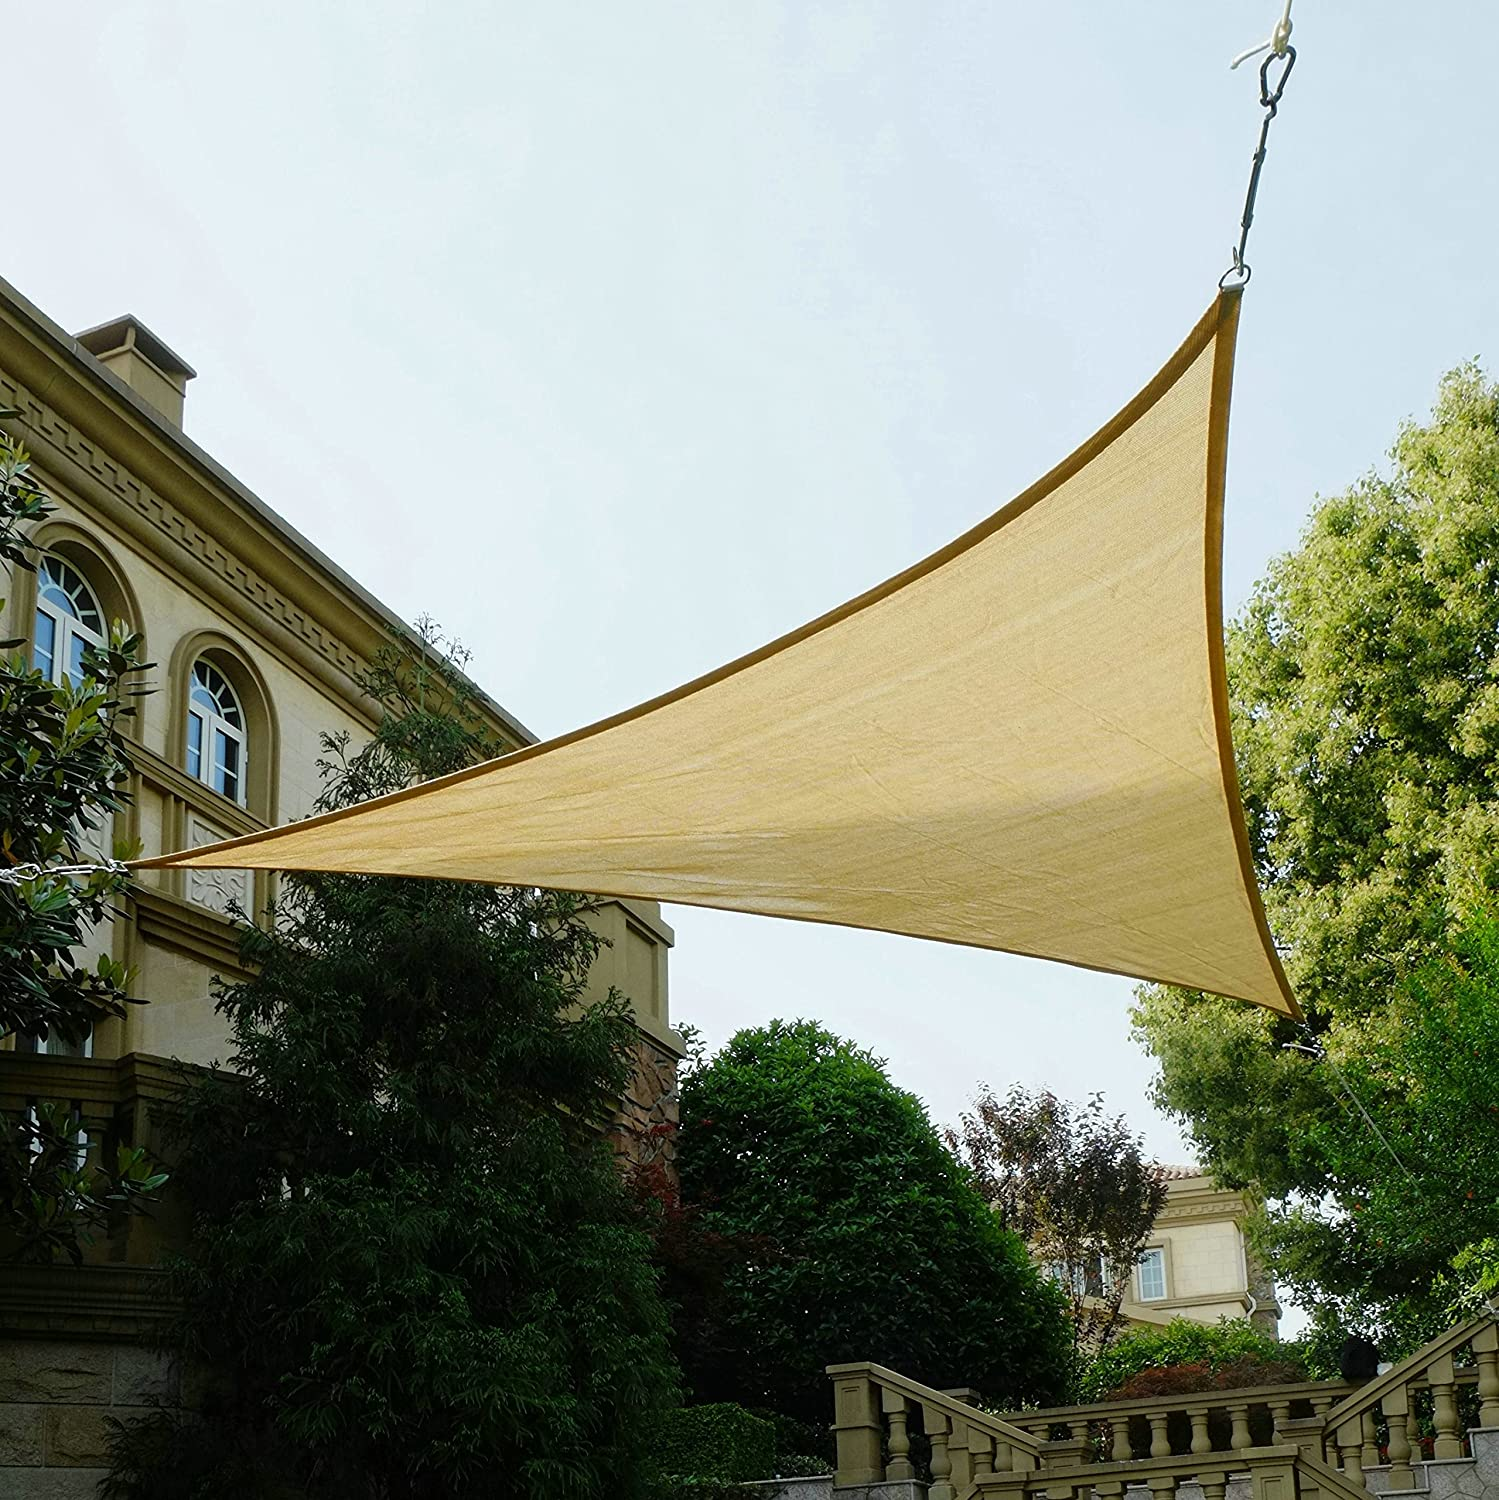 Quictent 18 x 18 x 18 FT 185G HDPE Triangle Sun Shade Sail Canopy 98 UV Block Top Outdoor Cover Patio Garden Sand